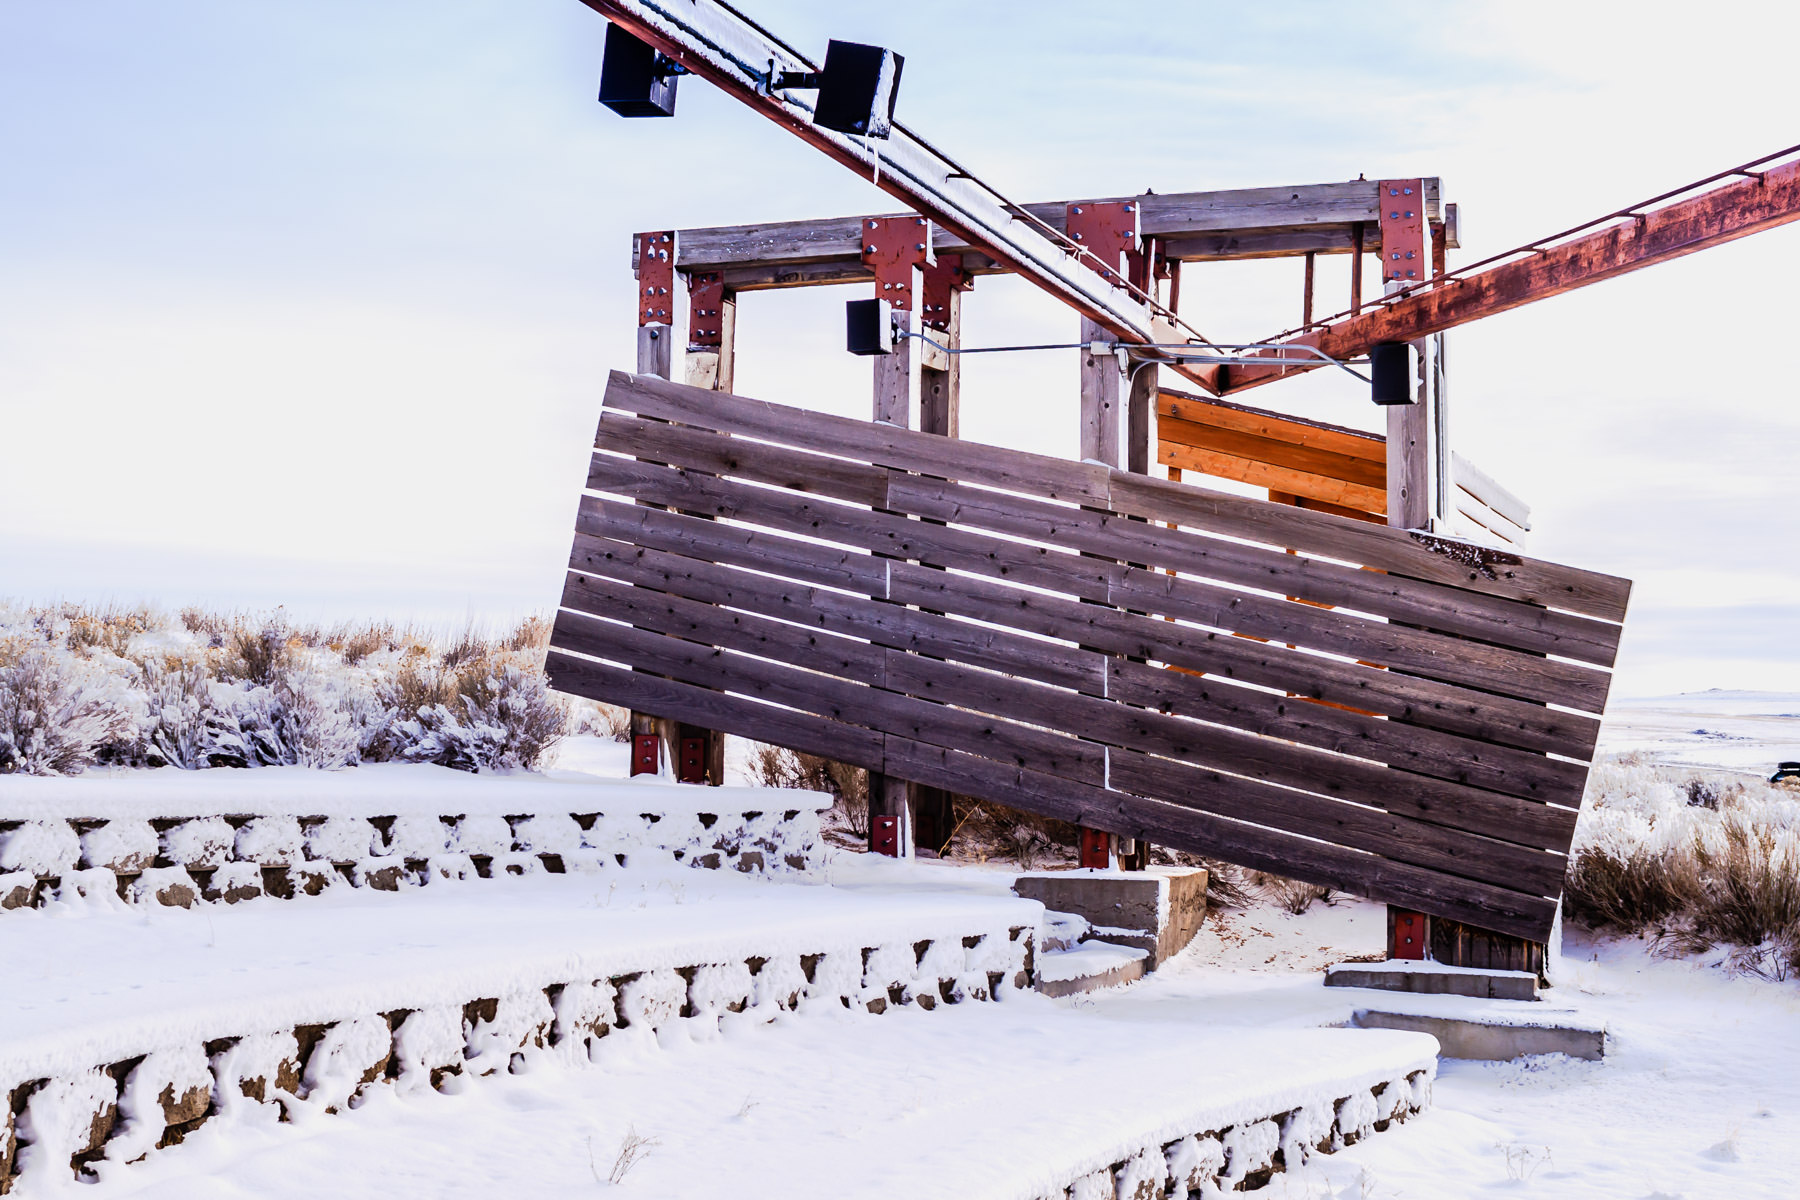 A wooden structure at Utah's Antelope Island State Park.